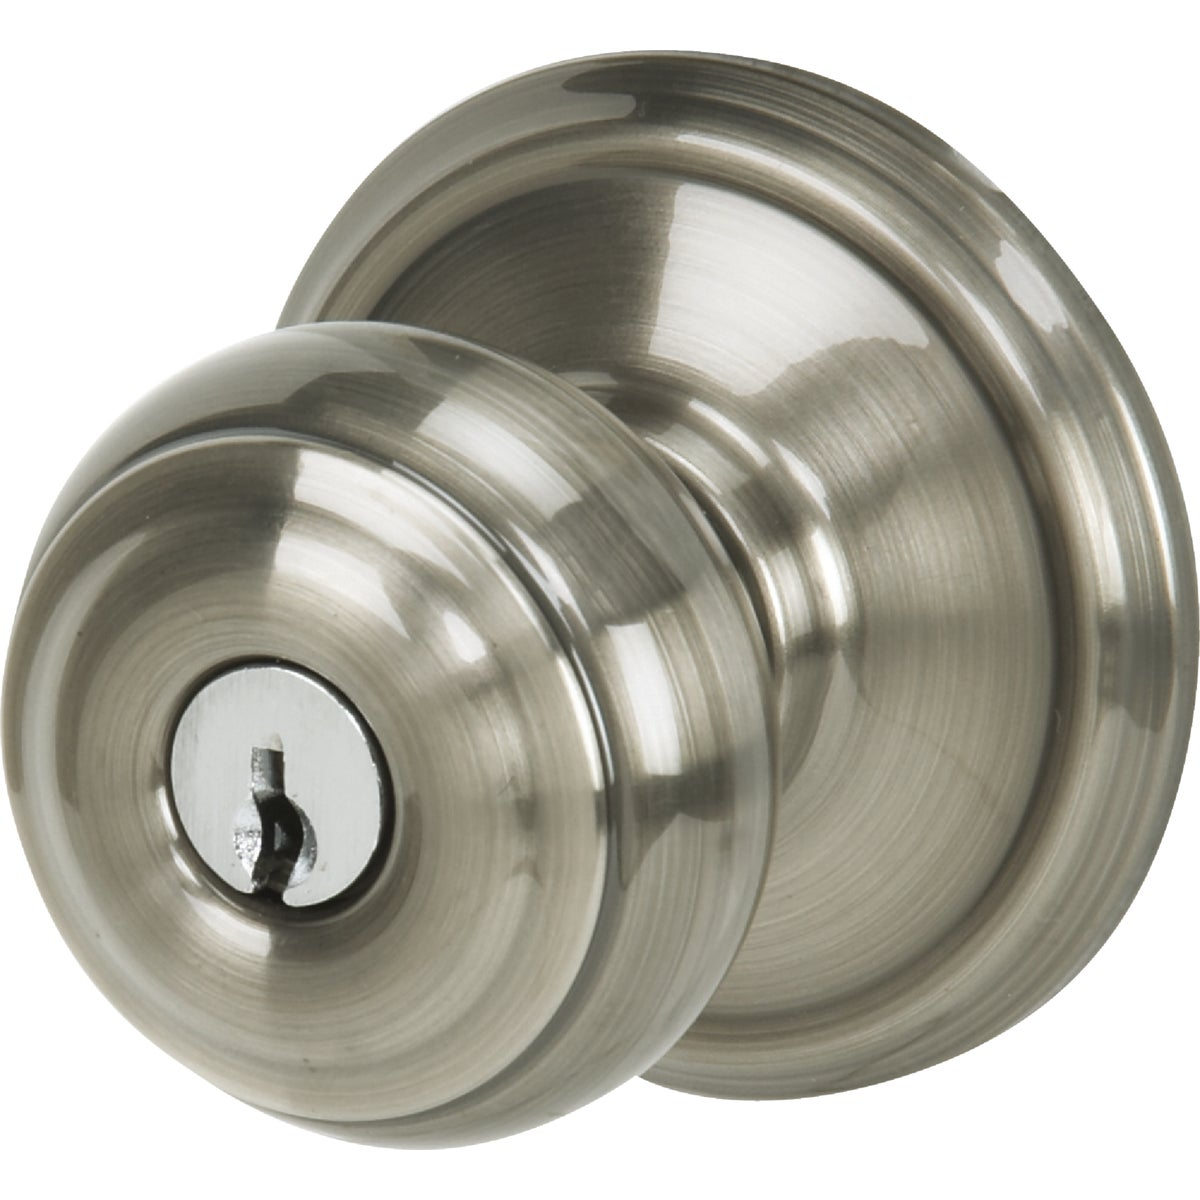 AP GEO ENTRY LOCK - F51VGEO620 by Schlage Lock Co